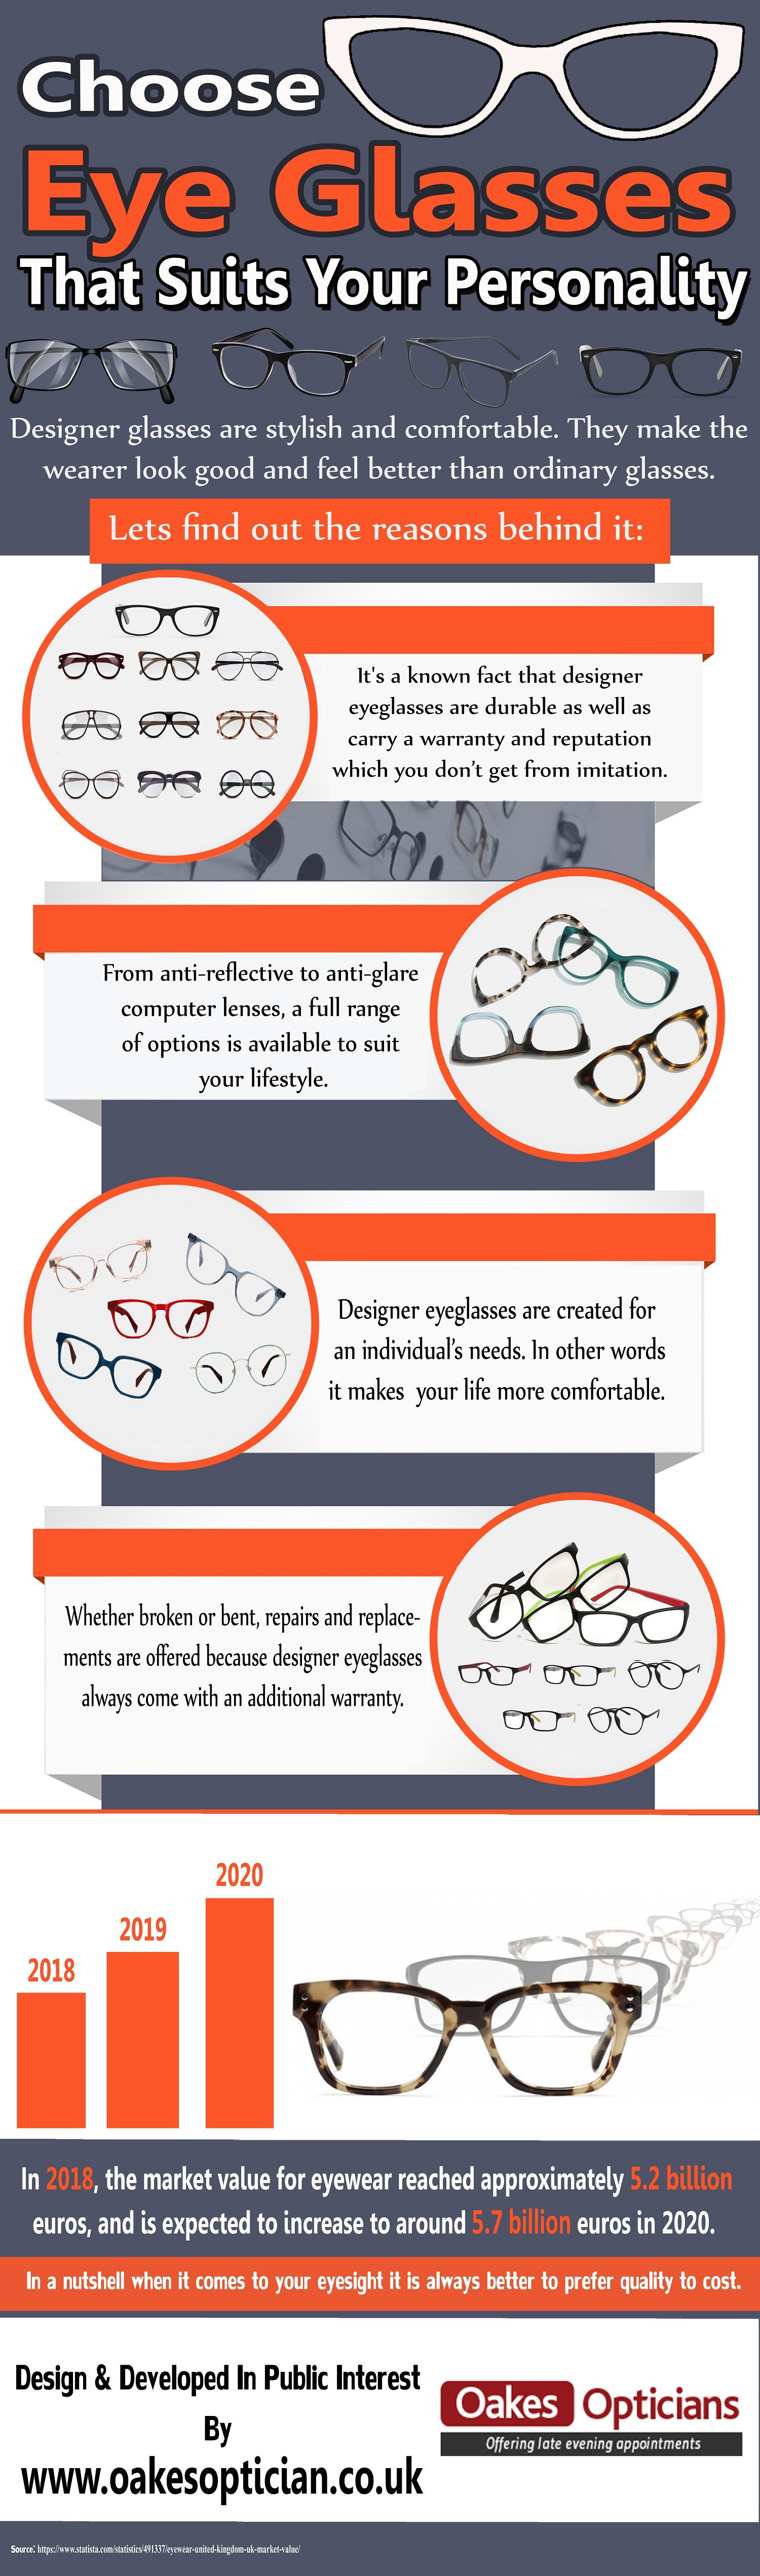 Choose Eyeglasses That Suits Your Personality Infographic